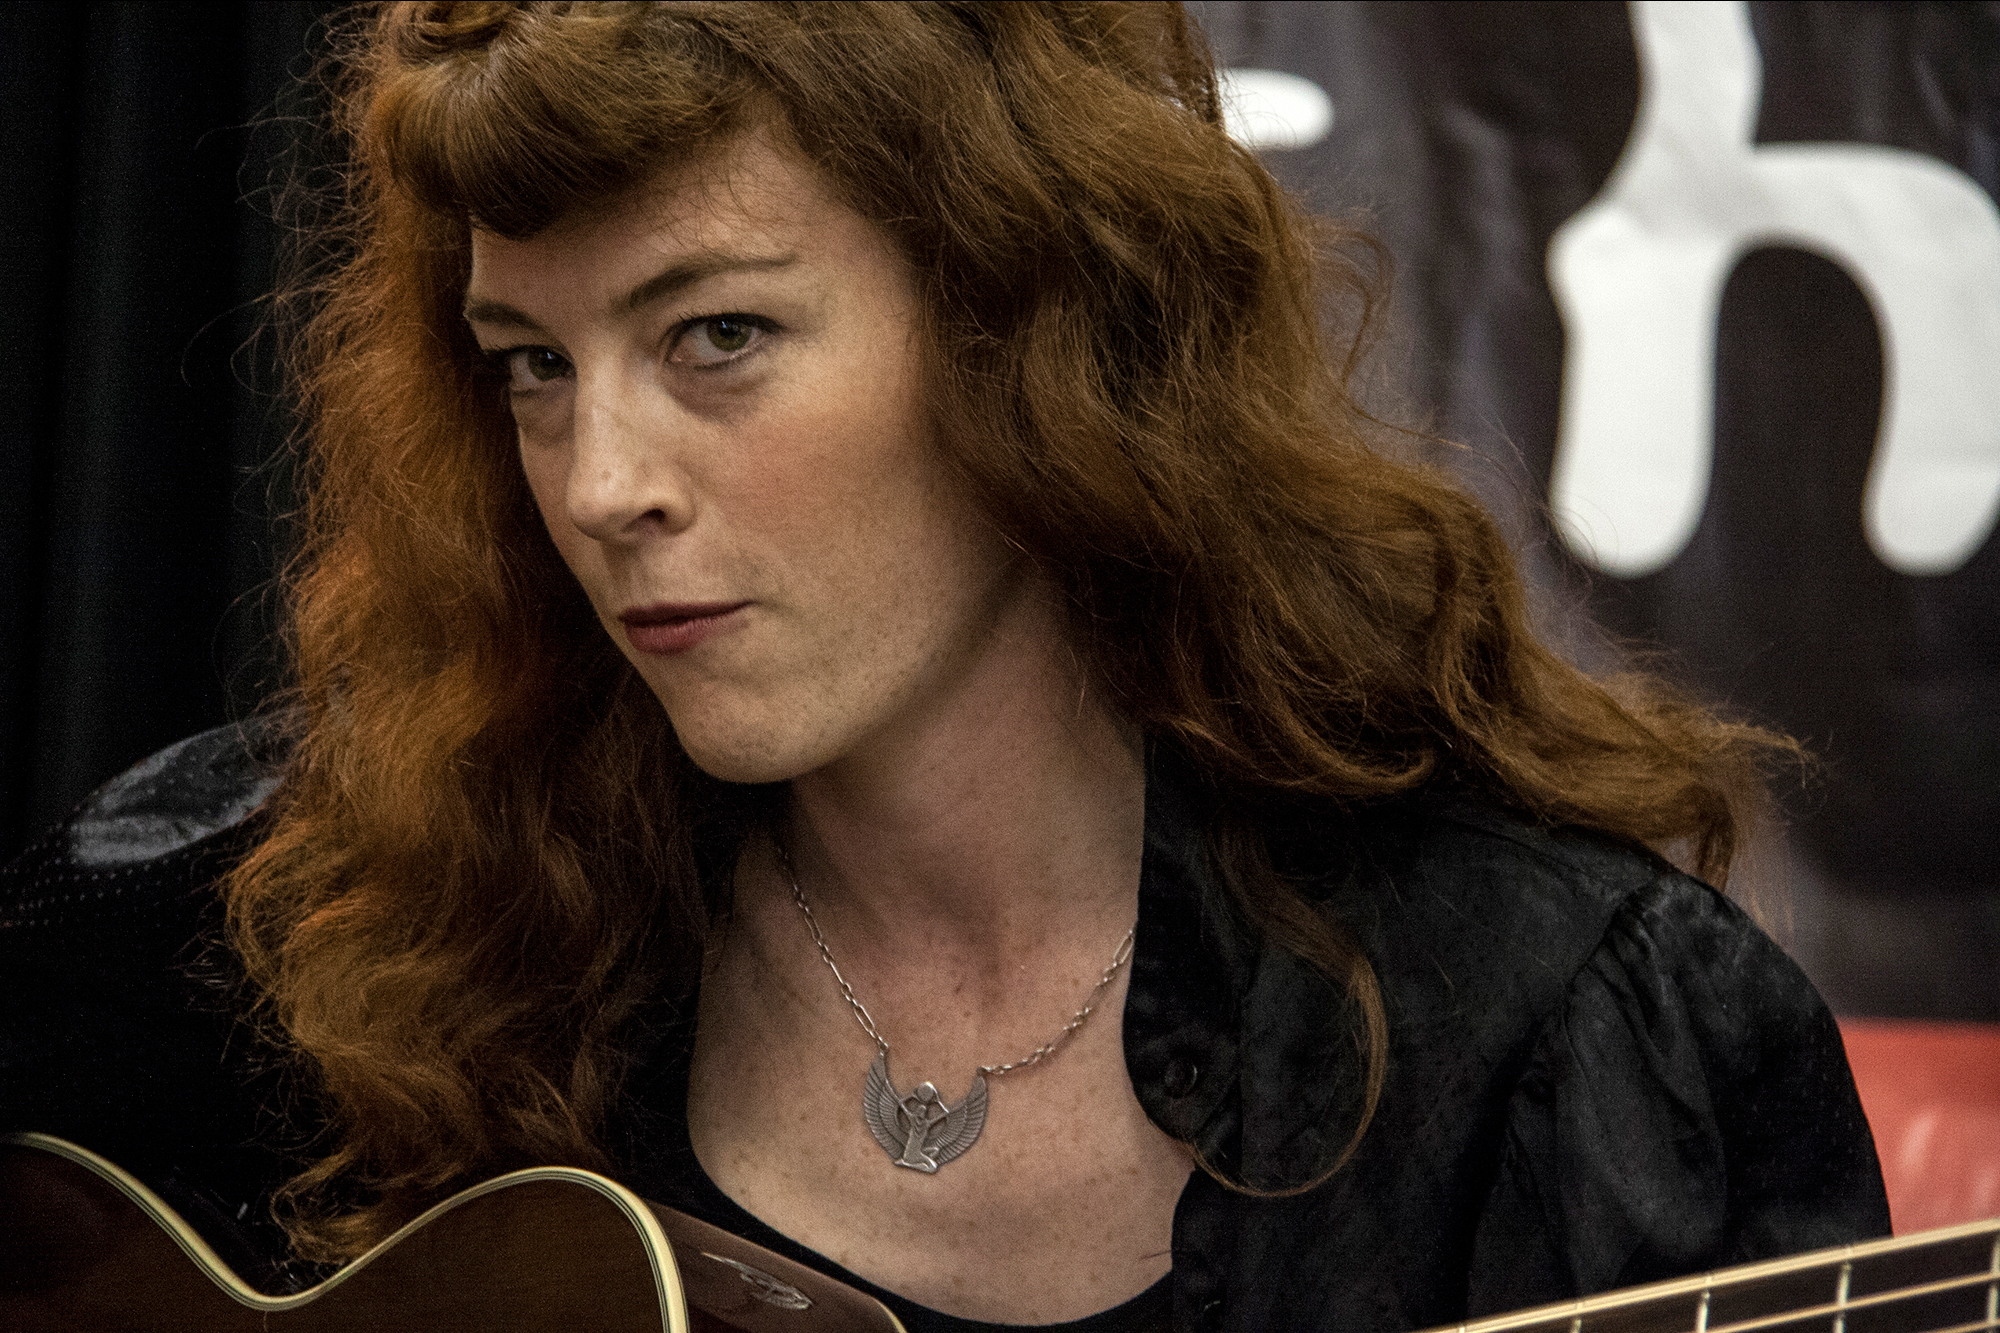 Watch Melissa Auf der Maur video